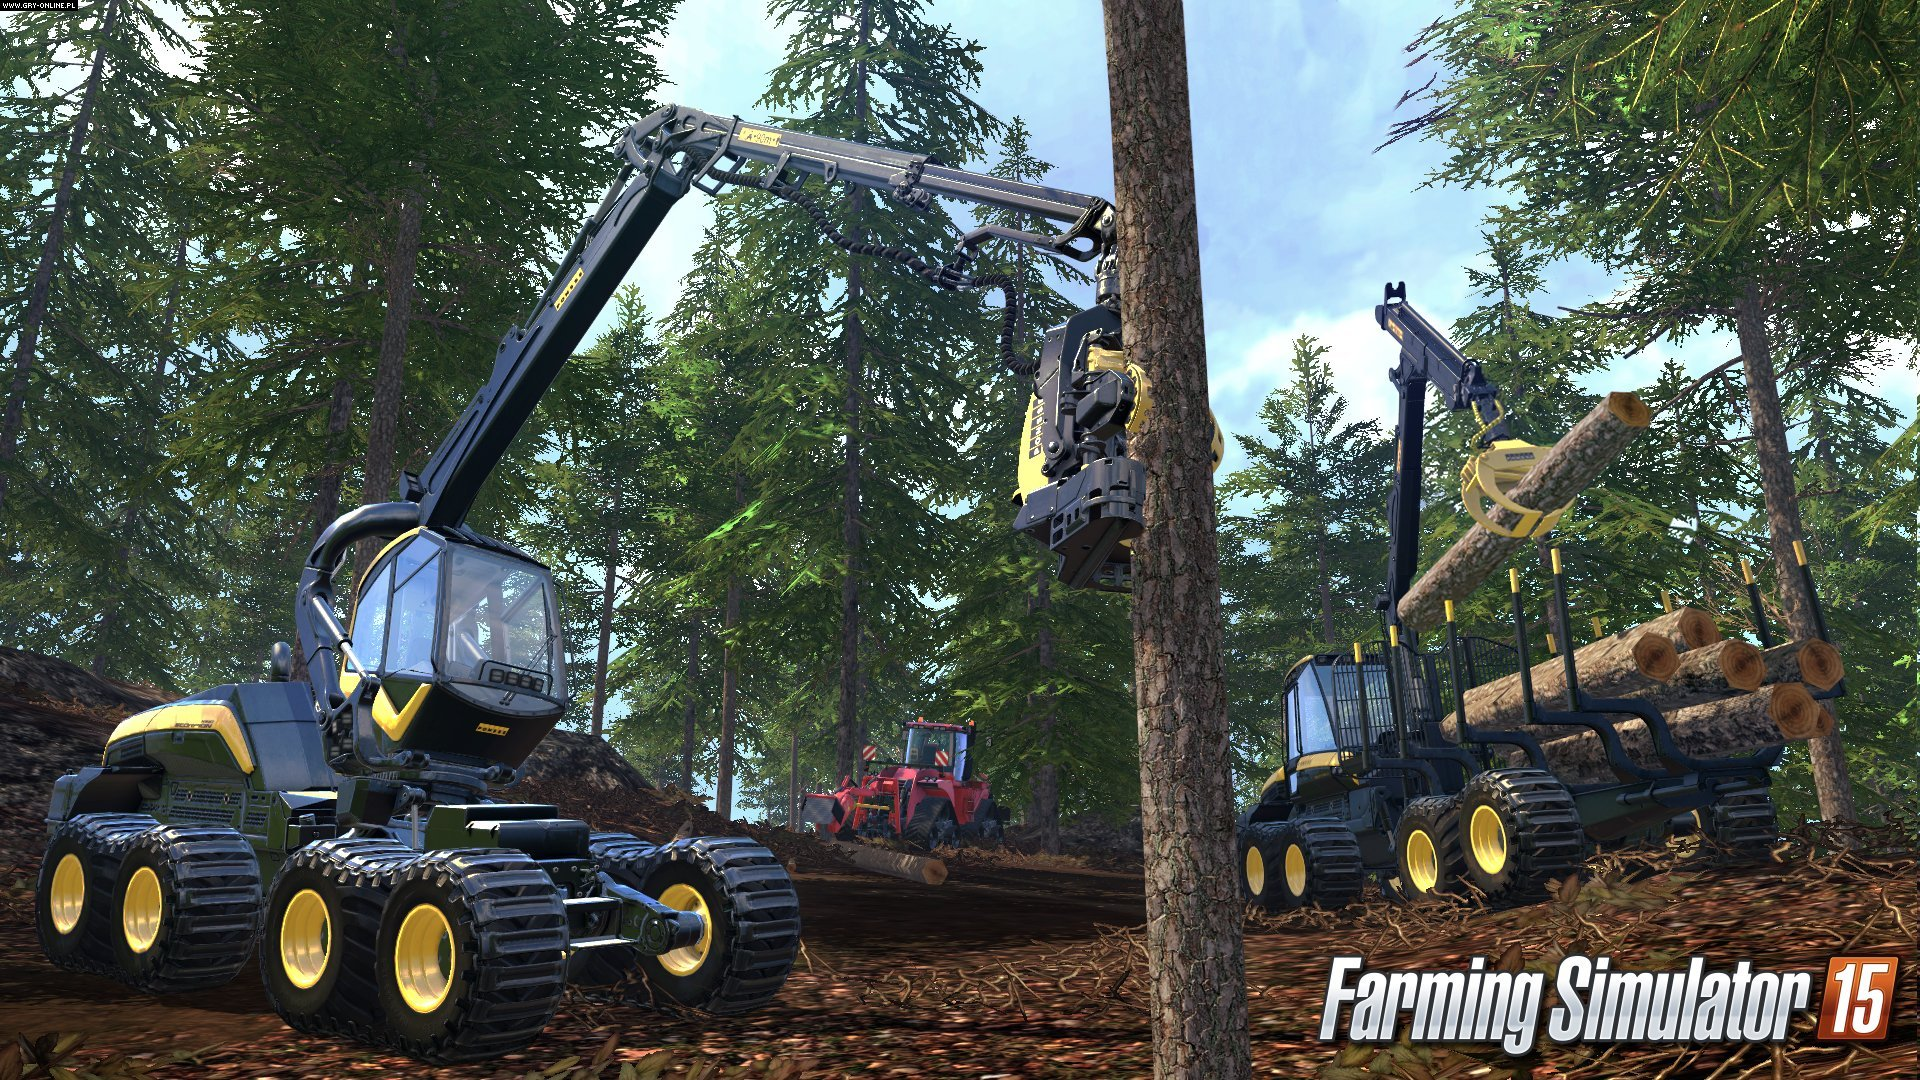 Farming Simulator 15 PC, X360, PS3, XONE, PS4 Games Image 5/14, GIANTS Software, Focus Home Interactive